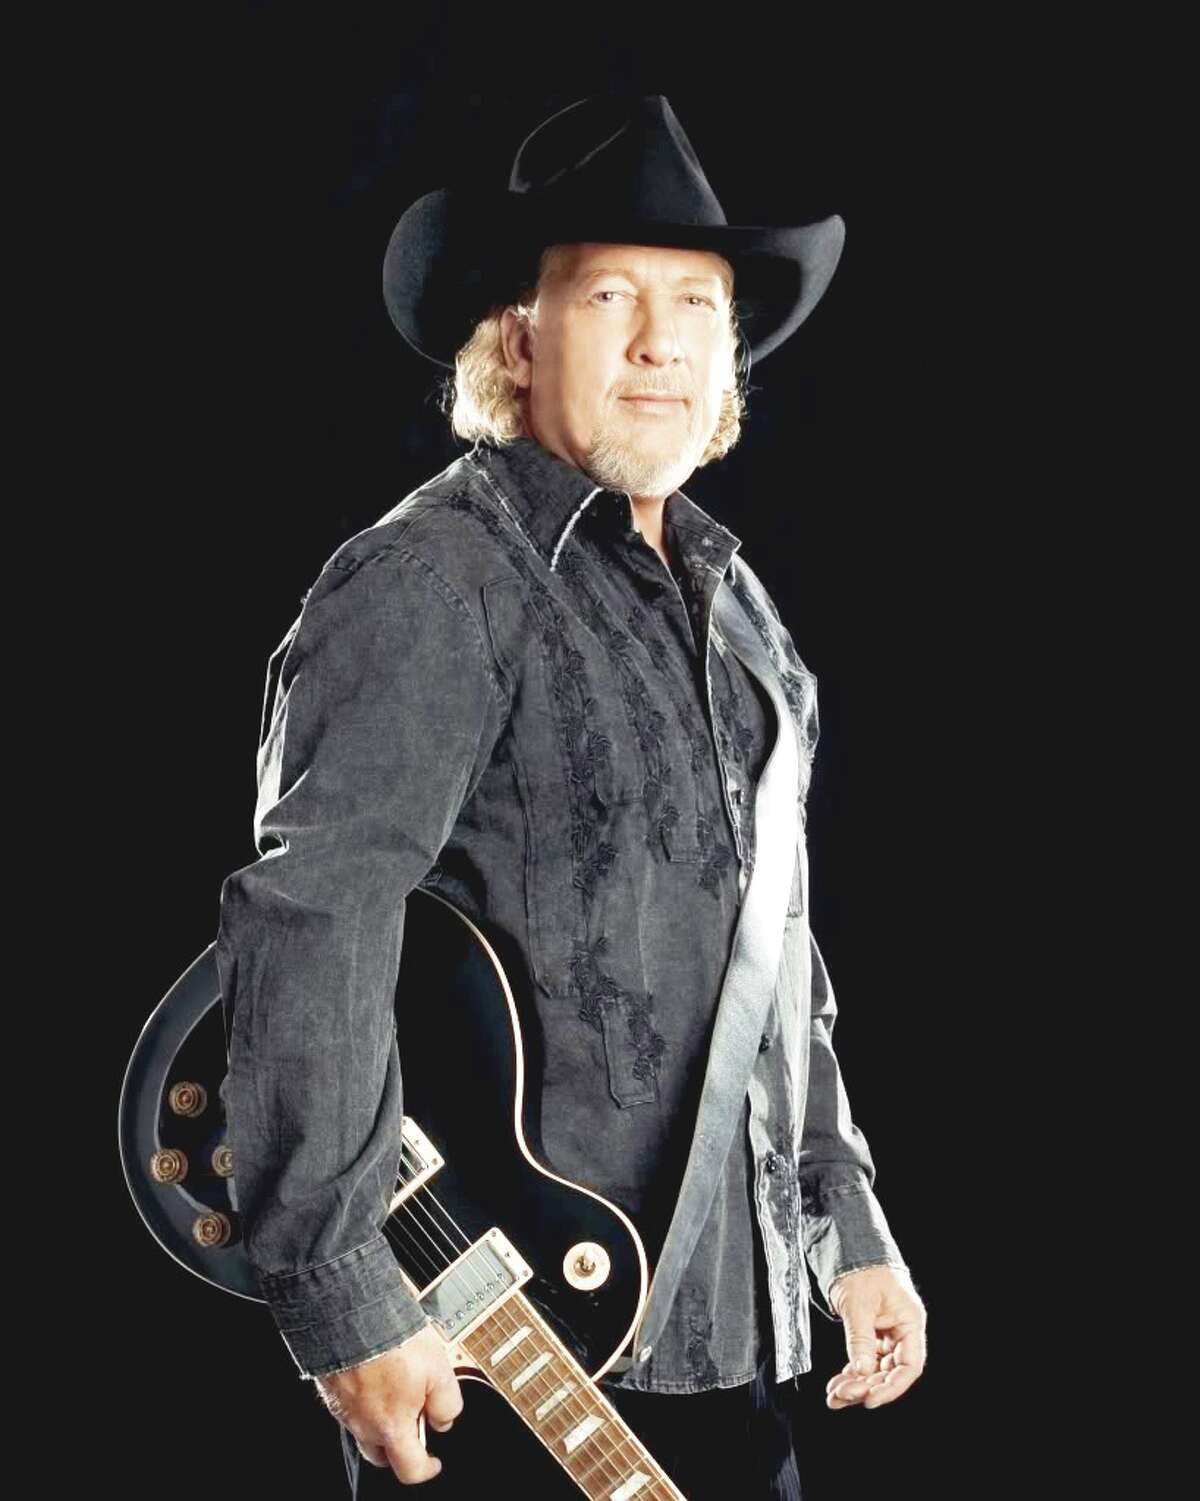 """Starting with his first major hit, a cover of Billy Joe Shaver's """"I'm Just an Old Hunk of Coal (But I'm Gonna Be a Diamond Someday),"""" the singer with the distinctive voice helped launched the neo-traditionalist country movement in the 1980s. His other hits include """"Wild and Blue"""" and """"Swingin.'"""" This acoustic show is billed as an intimate evening. 7:30 p.m. Friday. Brauntex Theatre, 290 W. San Antonio St., New Braunfels. $35-$53. 830-627-0808, brauntex.org. -- John Goodspeed"""